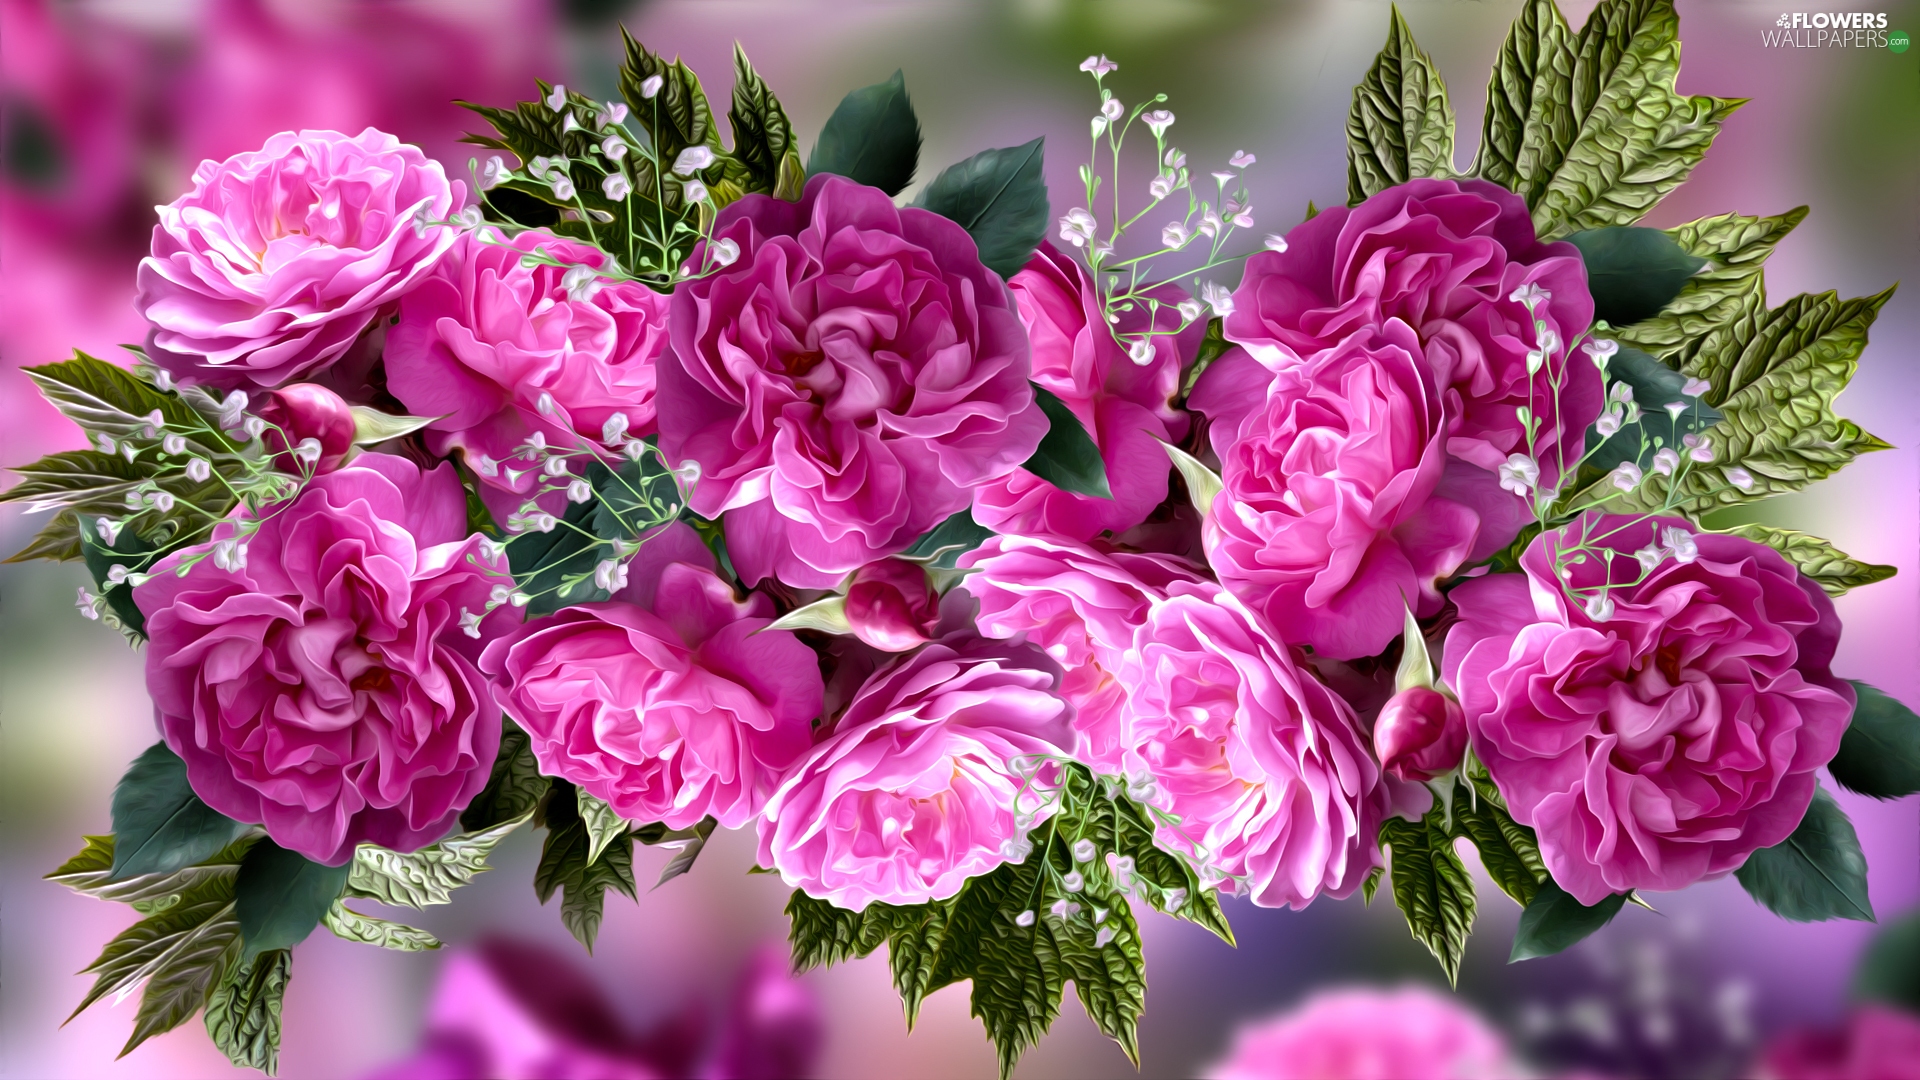 leaves, graphics, developed, roses, Pink